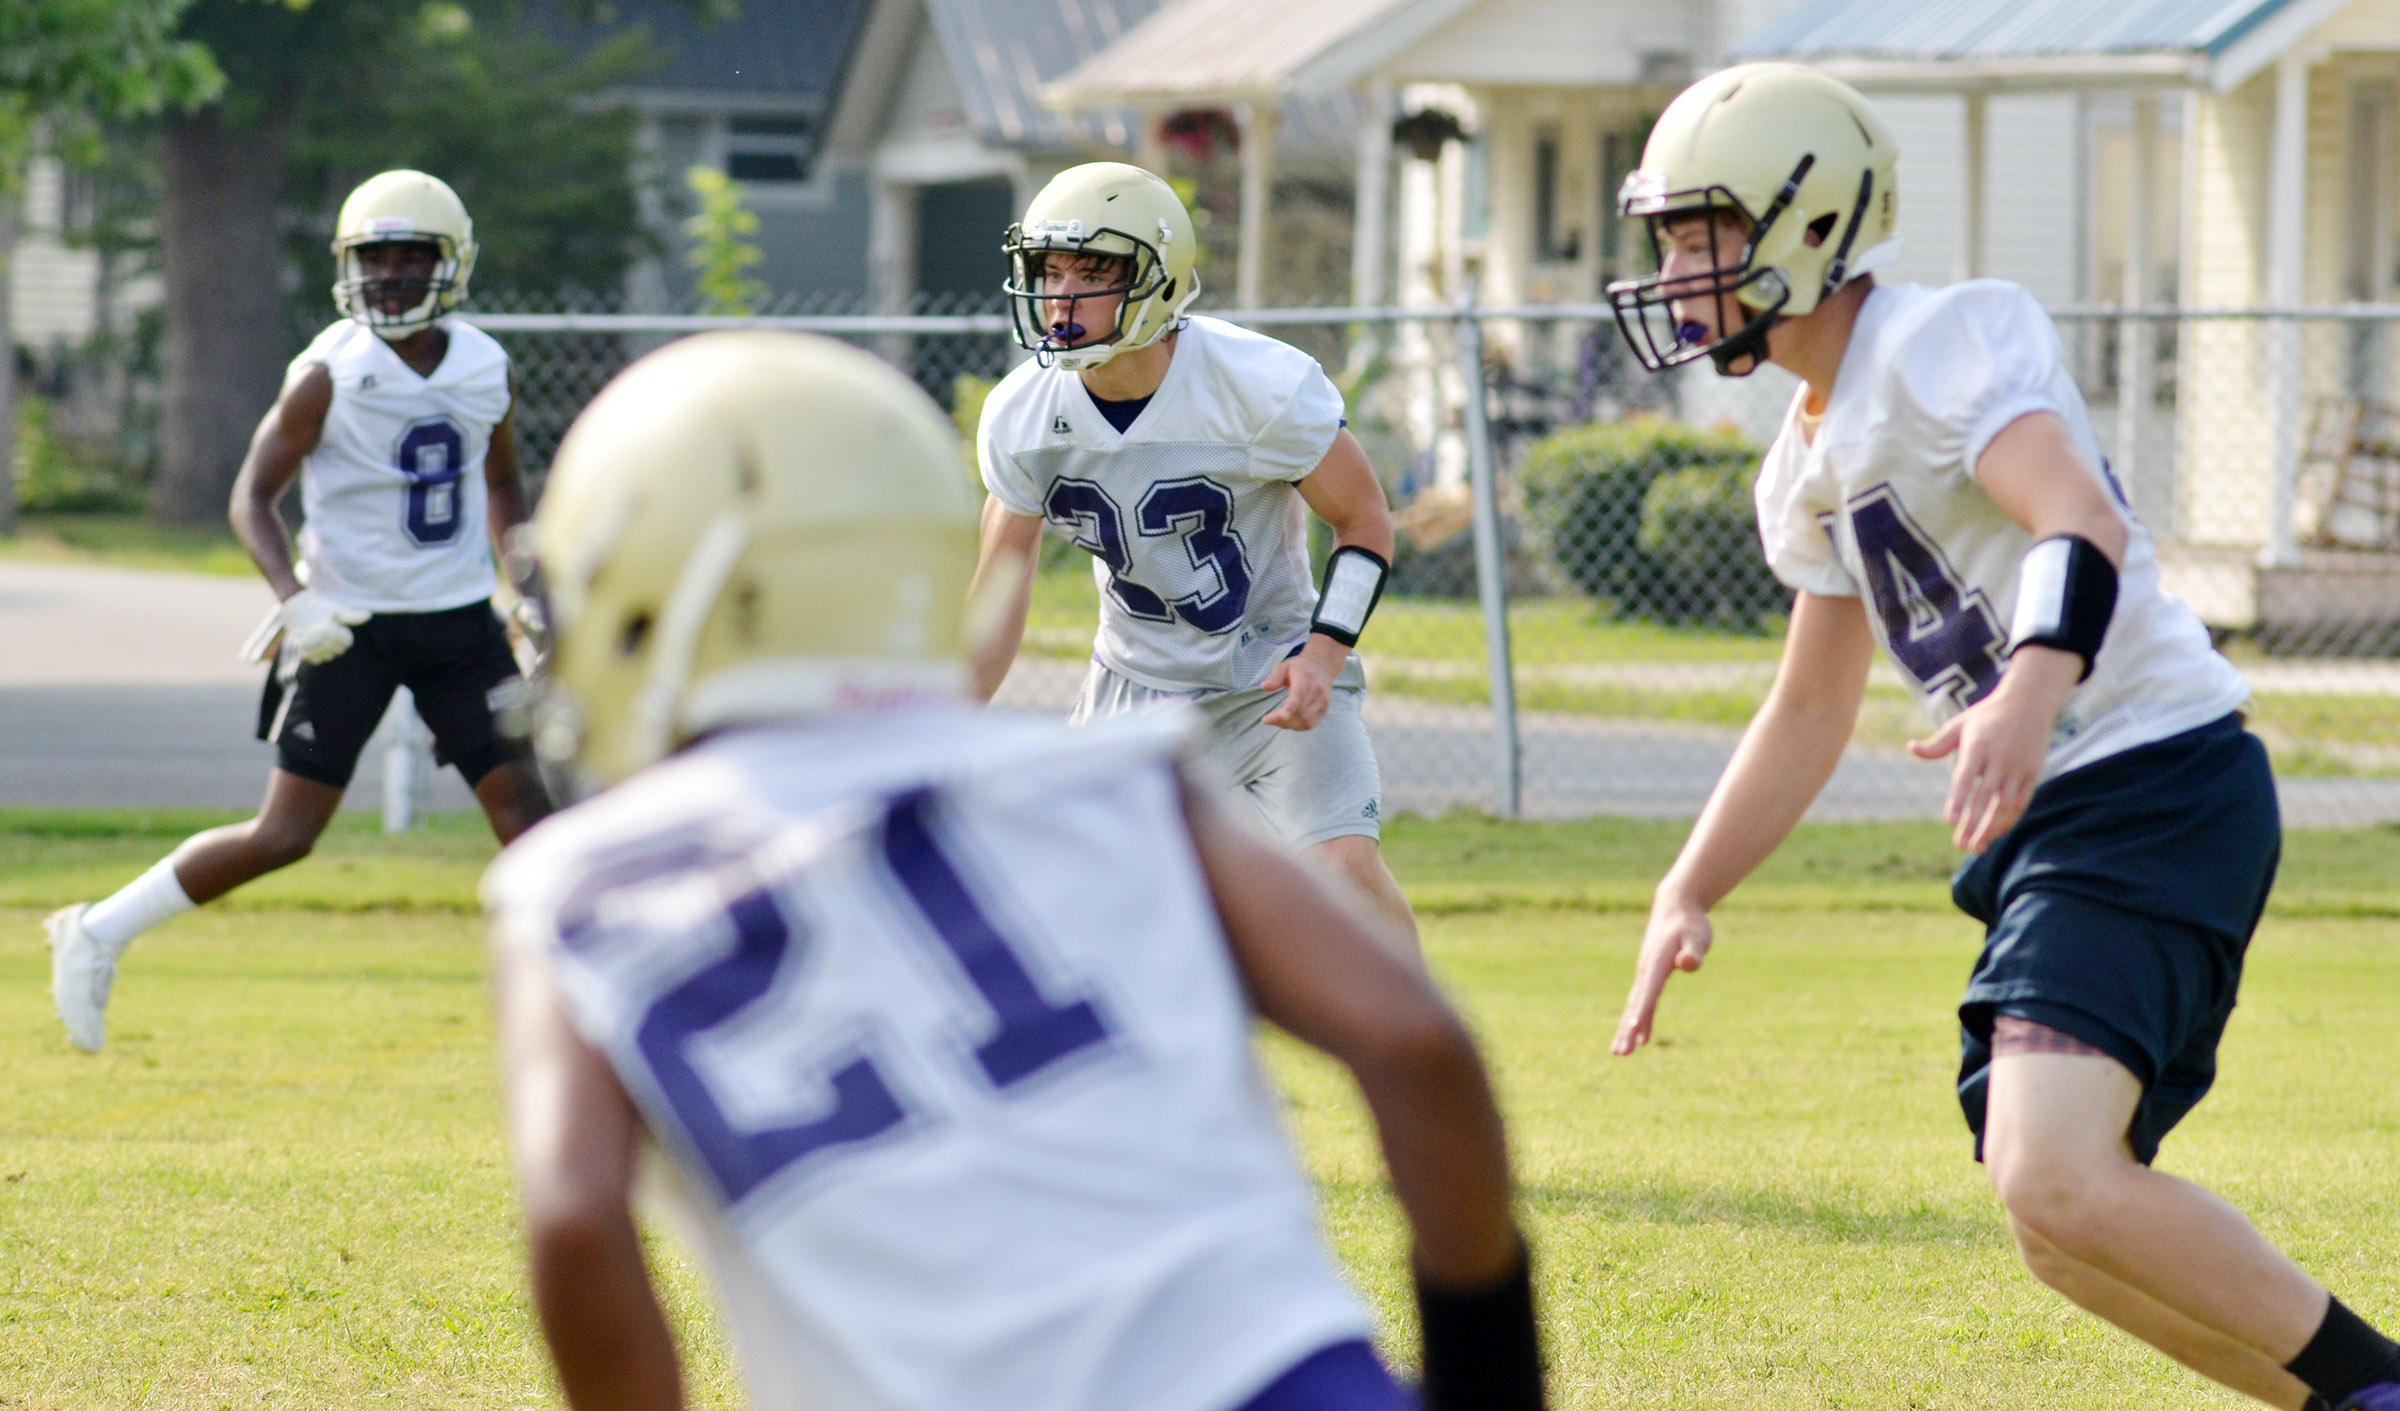 From left, CHS sophomore Malachi Corley and juniors Tristan Johnson and Dakota Reardon run a play.